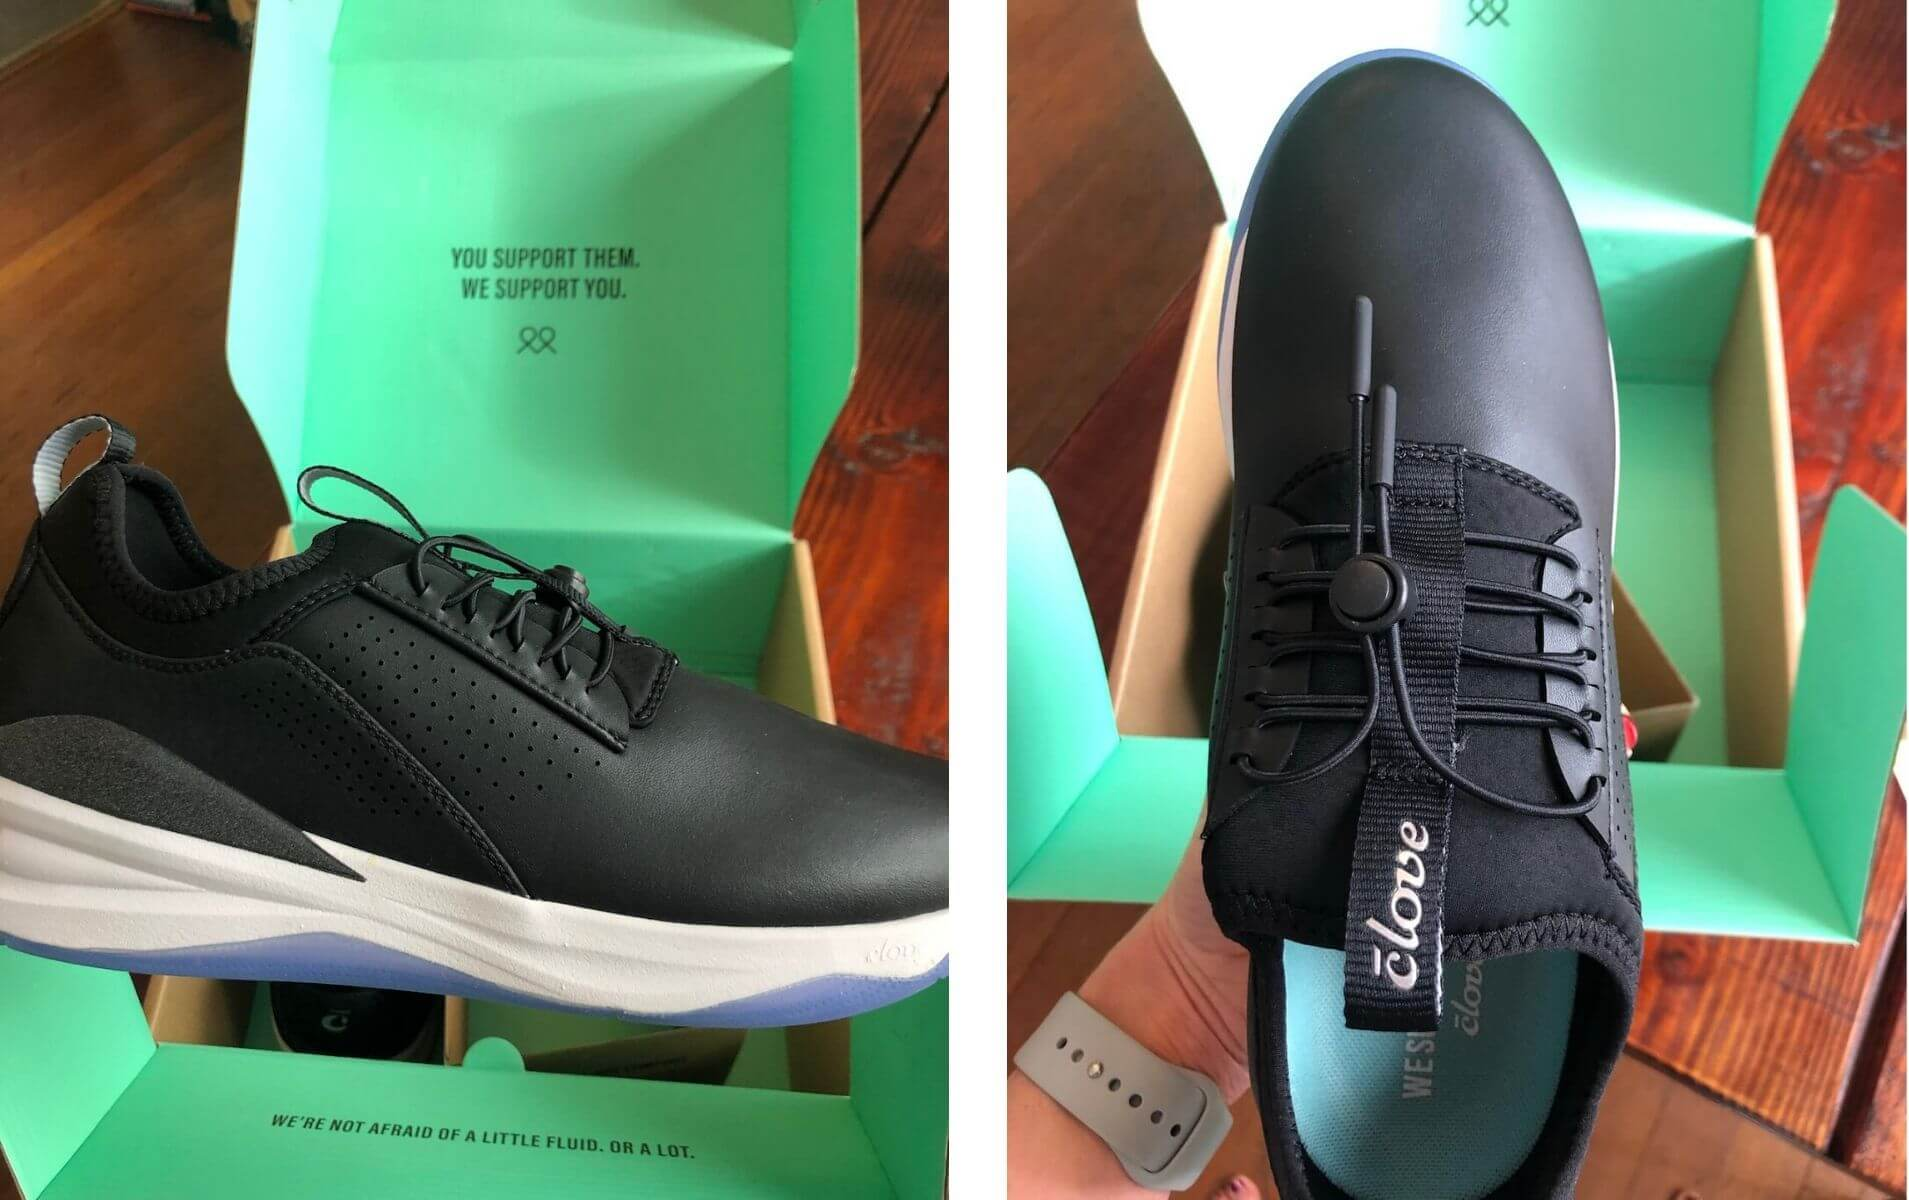 Tried & Trusted: Clove Sneakers Trusted Health